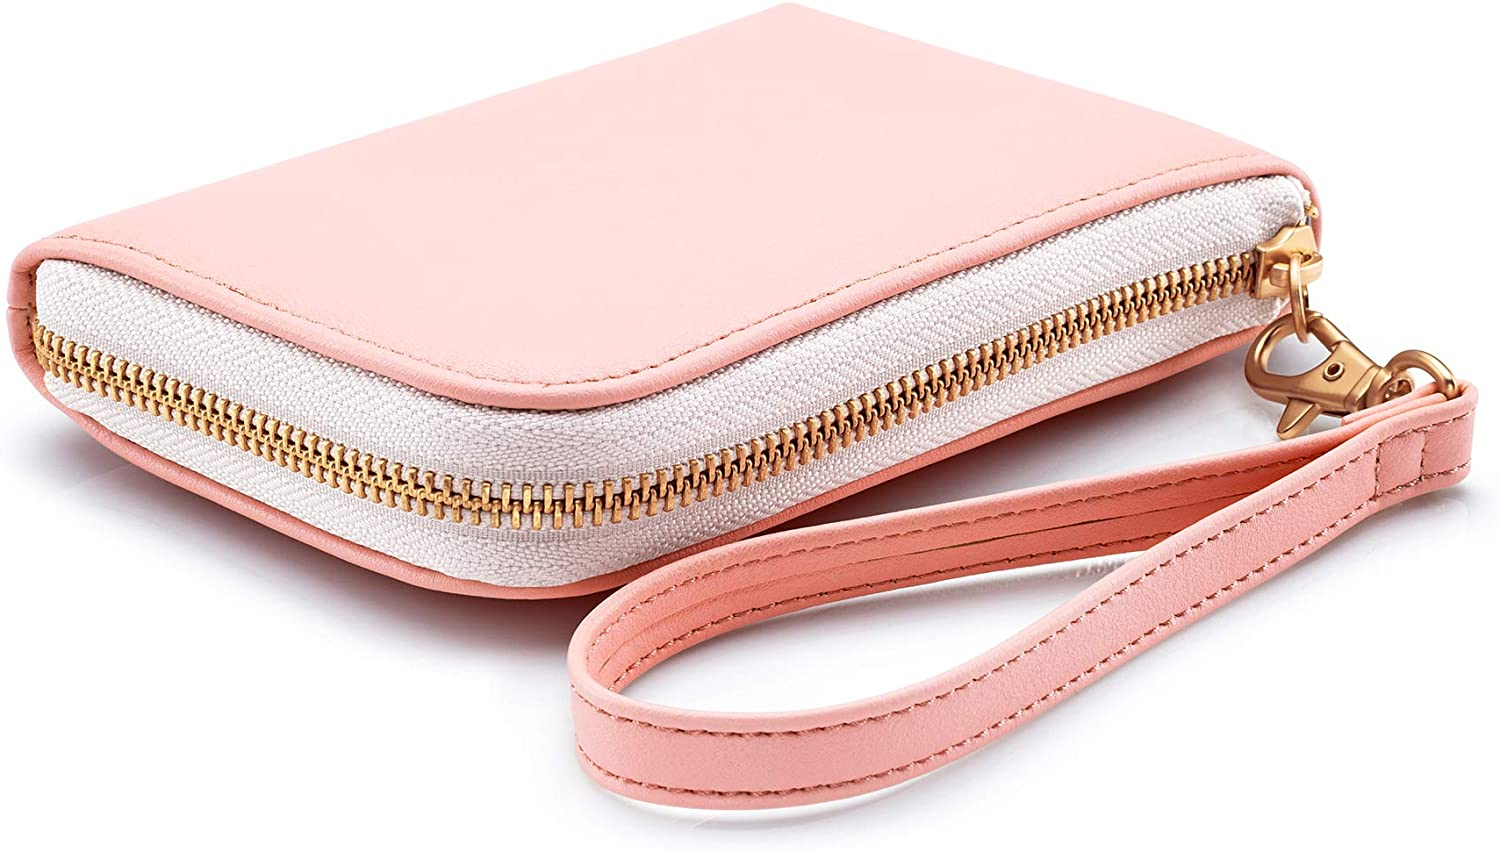 HP Sprocket Wallet Case - Portable Photo Printer Protective Soft Case with Side Pocket and Wrist Strap -Blush (4NC15A)